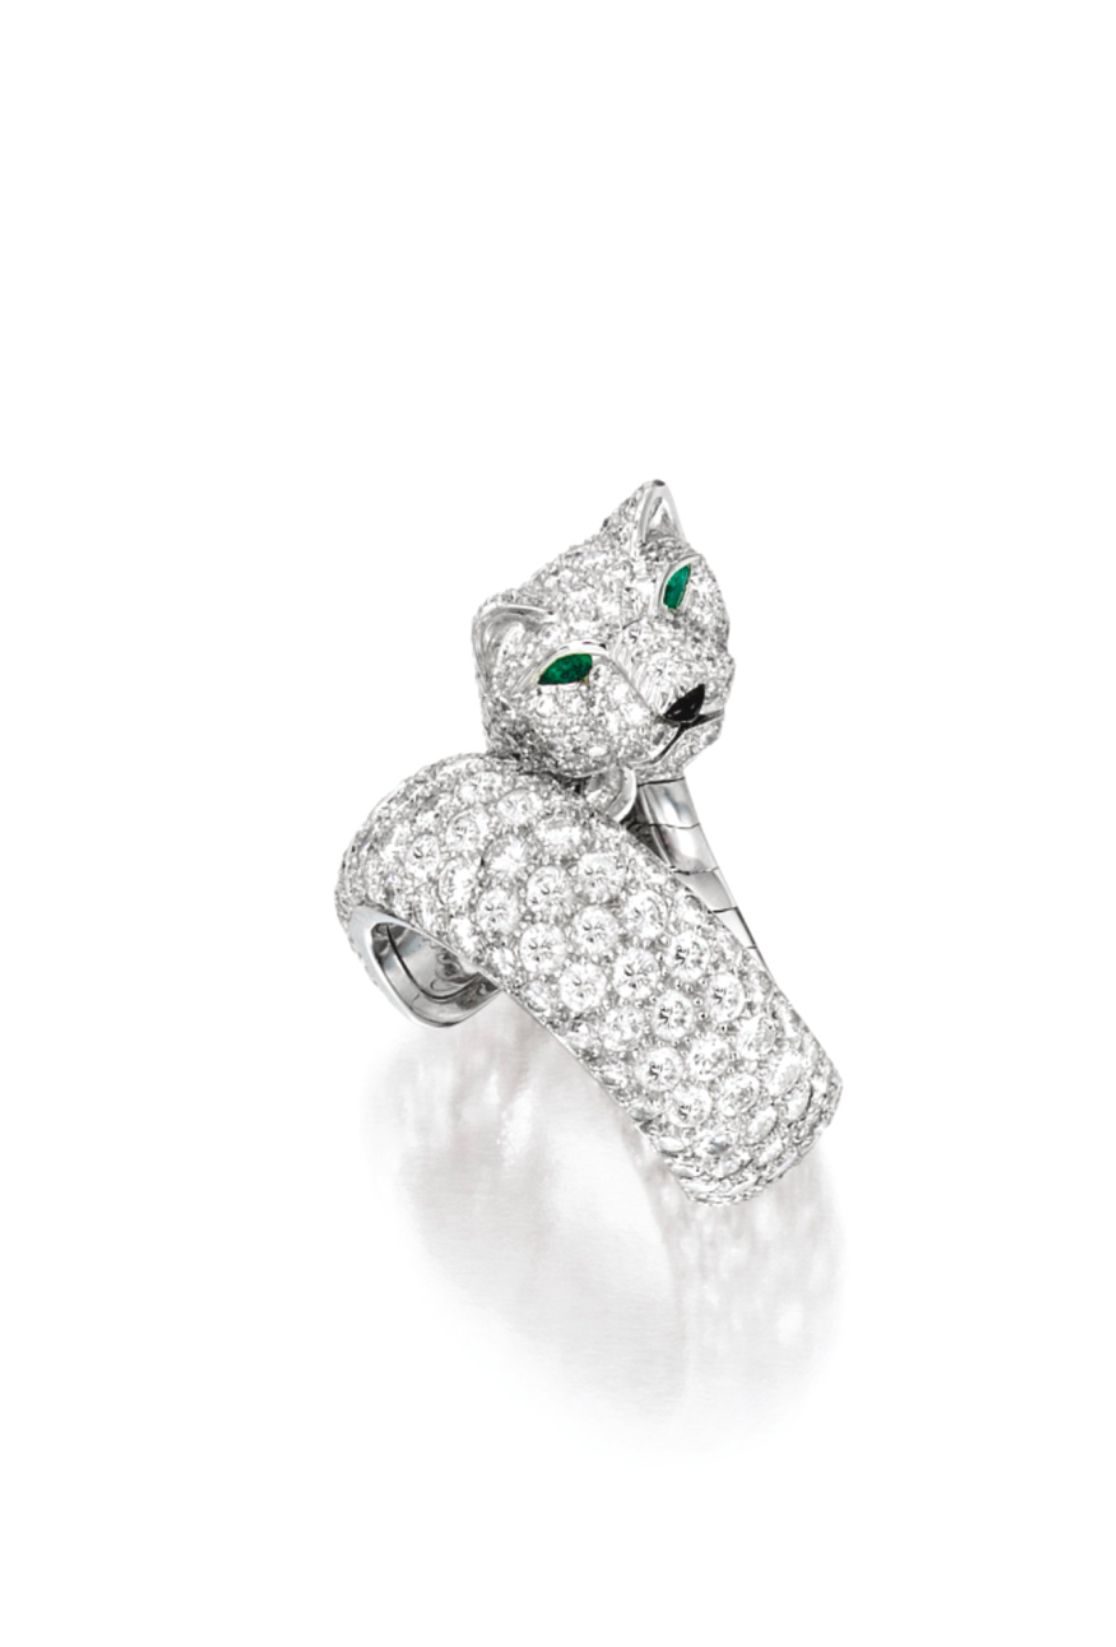 b5c14e97ee669 Diamond, Emerald and Onyx Ring, 'Panthère', Cartier. Designed as a ...